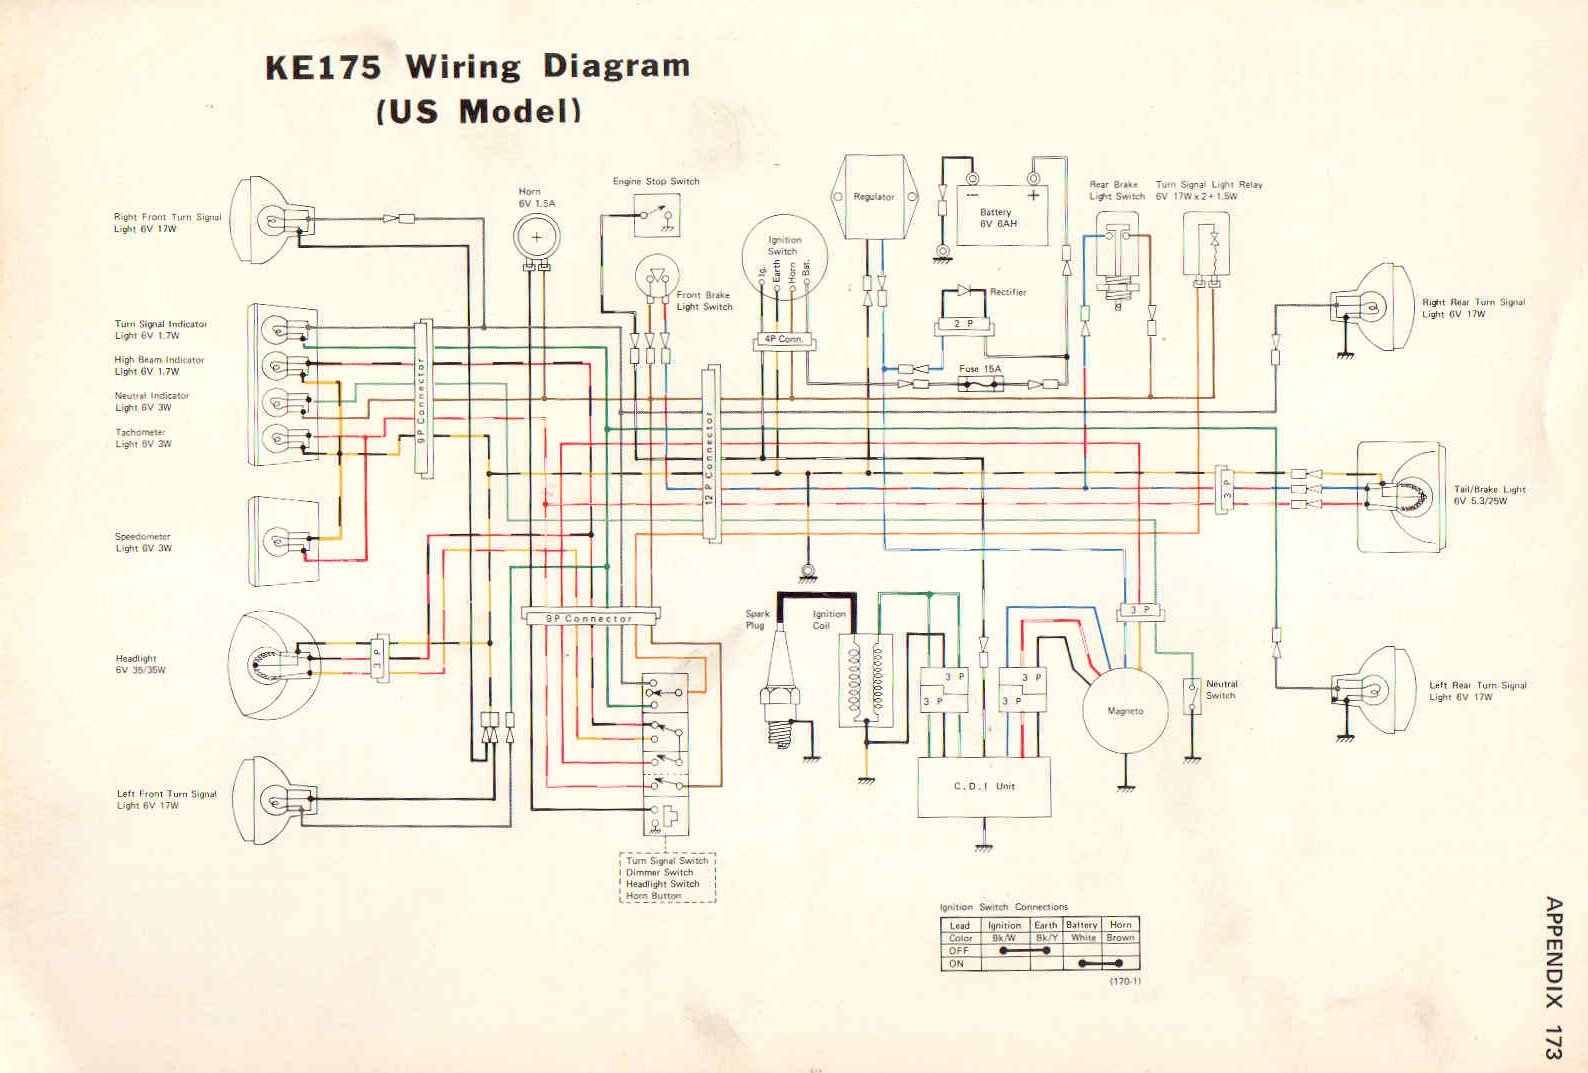 76 77 78 KE175 Wiring Diagram 76 77 78 ke175 wiring diagram yamaha ct175 wiring diagram at eliteediting.co